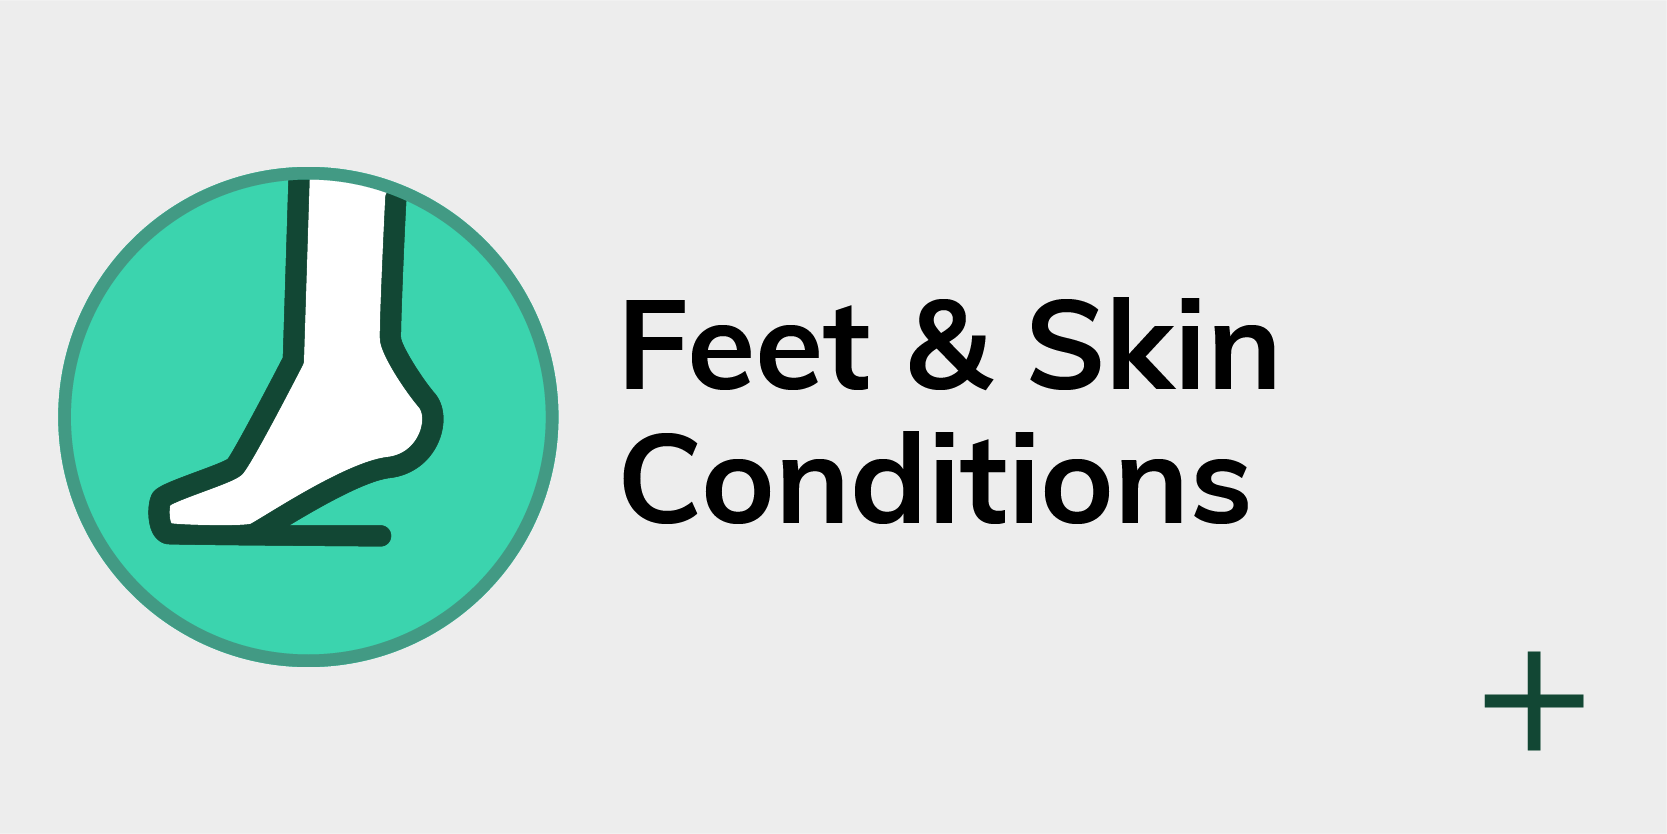 Feet & Skin Conditions